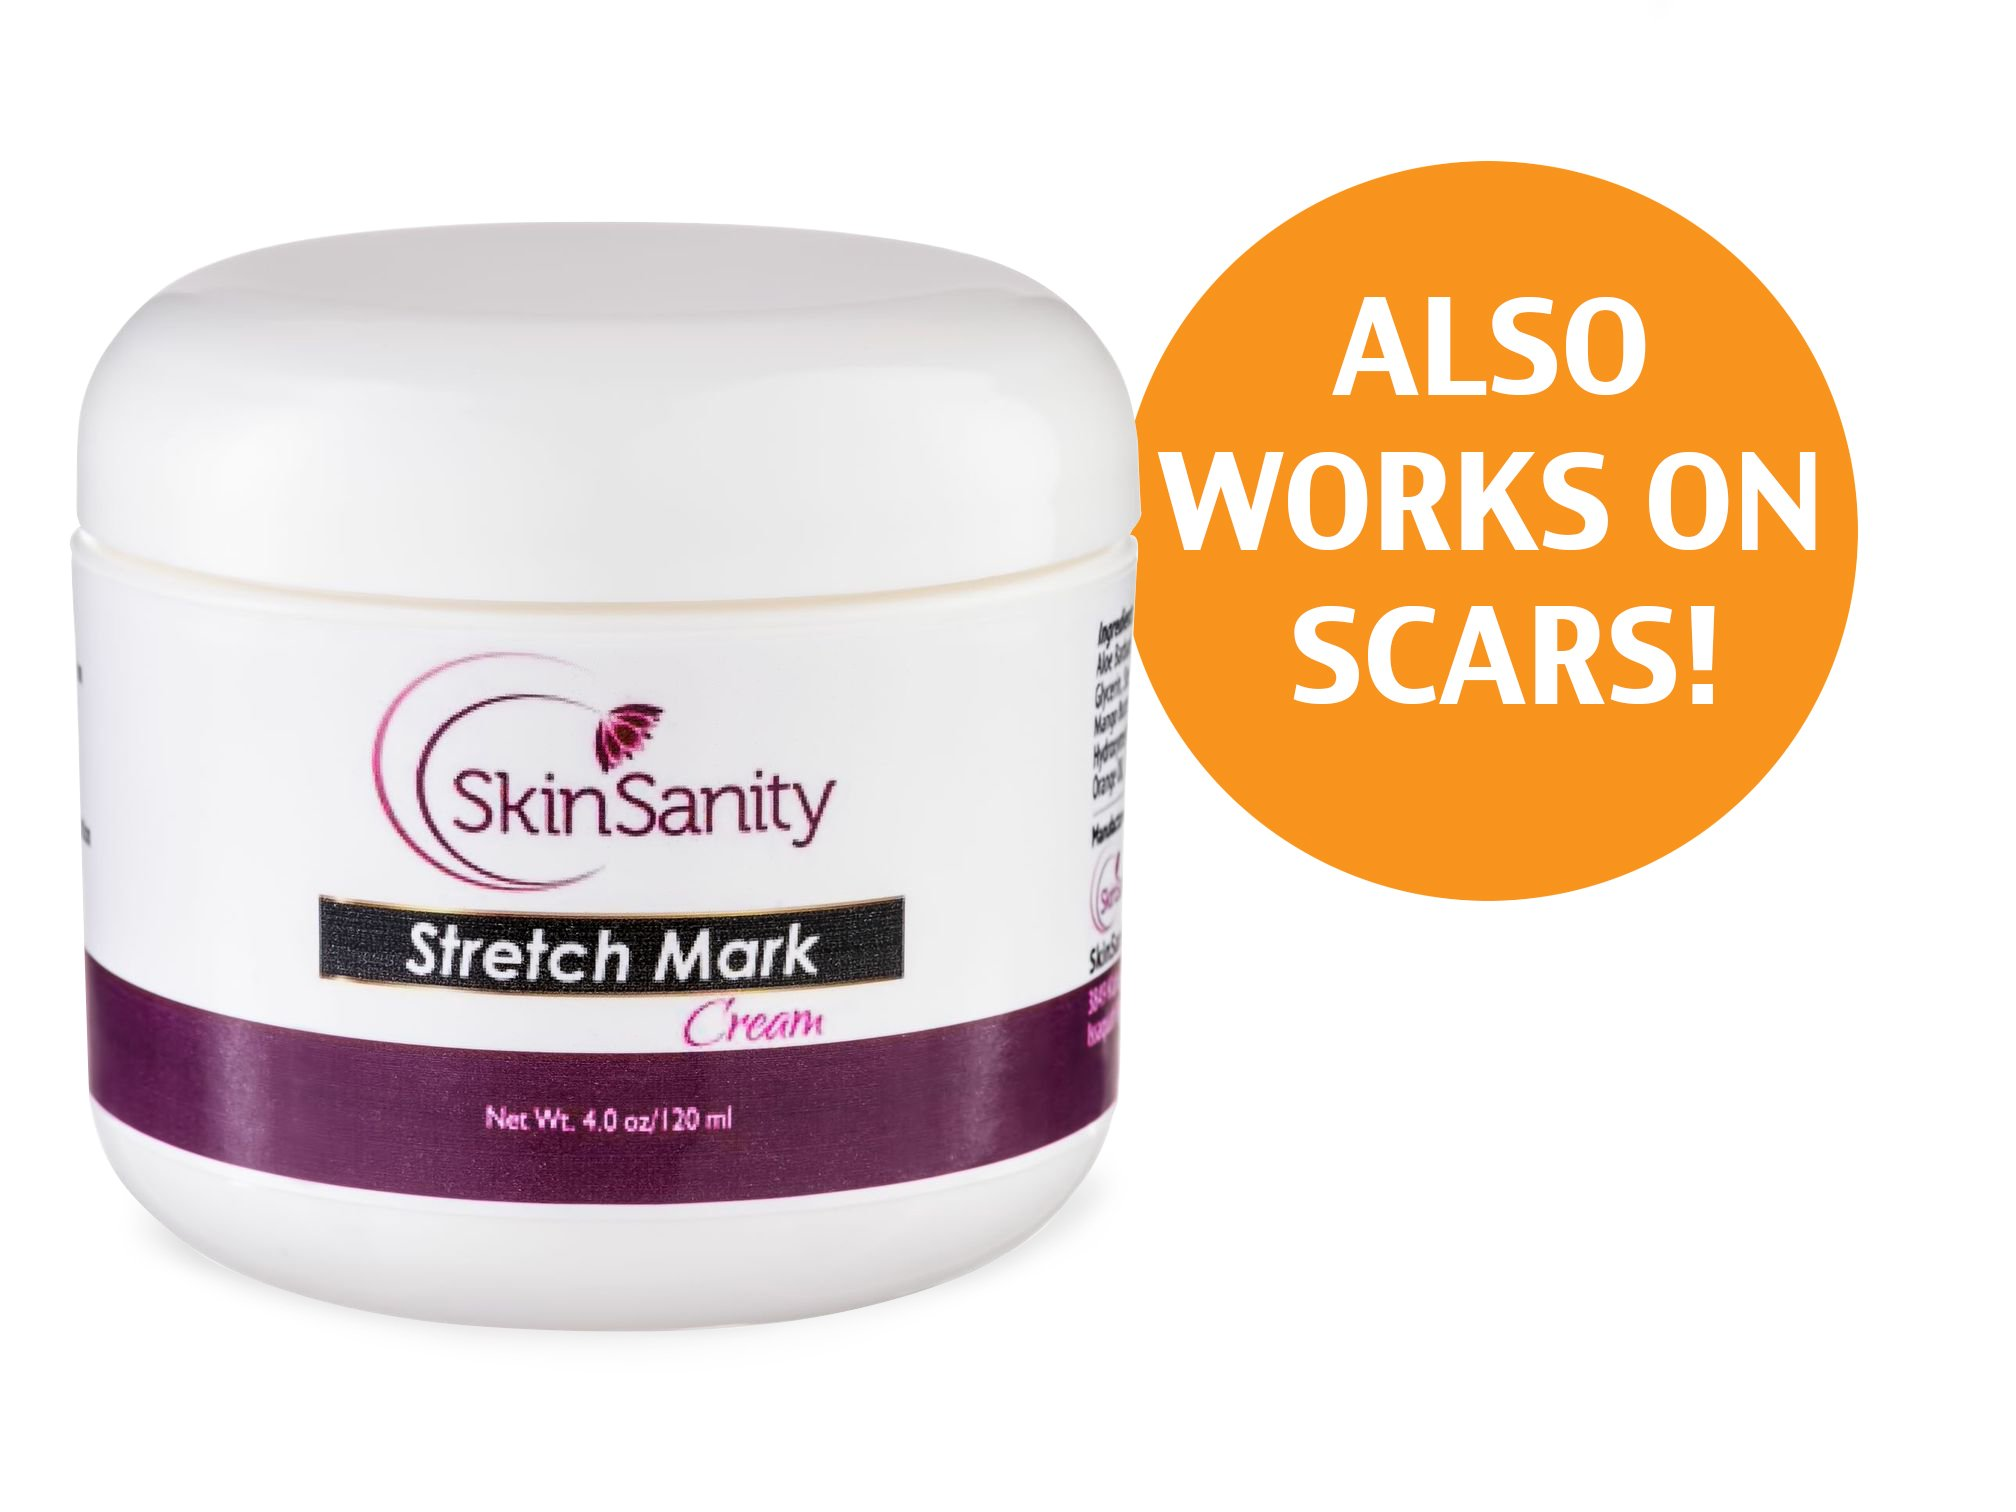 #1 Recommended Best Stretch Mark Cream - Used to Naturally Prevent, Repair and Remove Stretch Mark Scars Associated with Pregnancy, Exercise and Weight Gain or Loss. 100% Money Back Guarantee. This Skin Care Product is great for Moms, Bodybuilders, Women